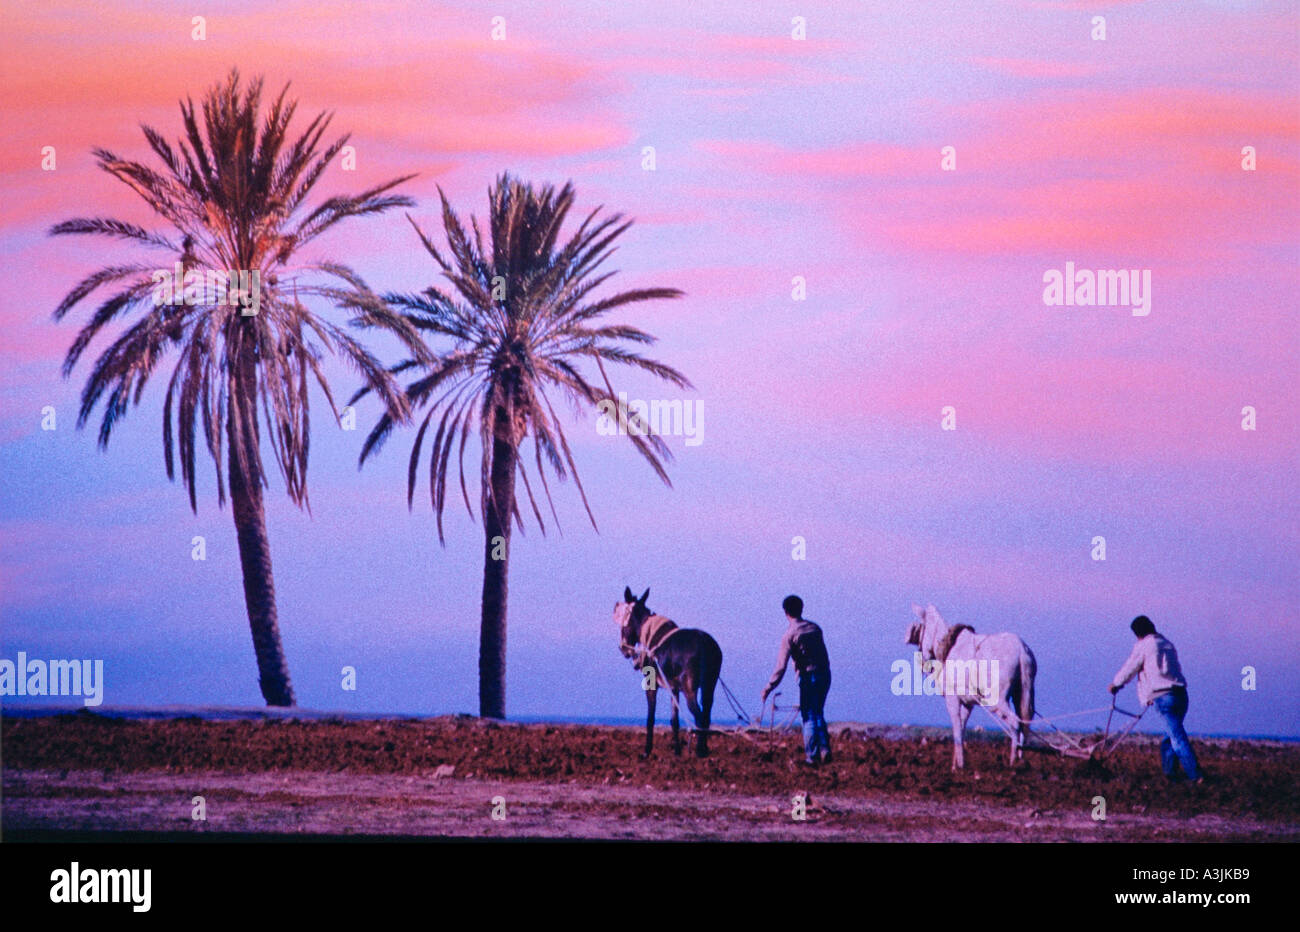 farmers ploughing at evening borderland algeria tunesia editorial use only - Stock Image